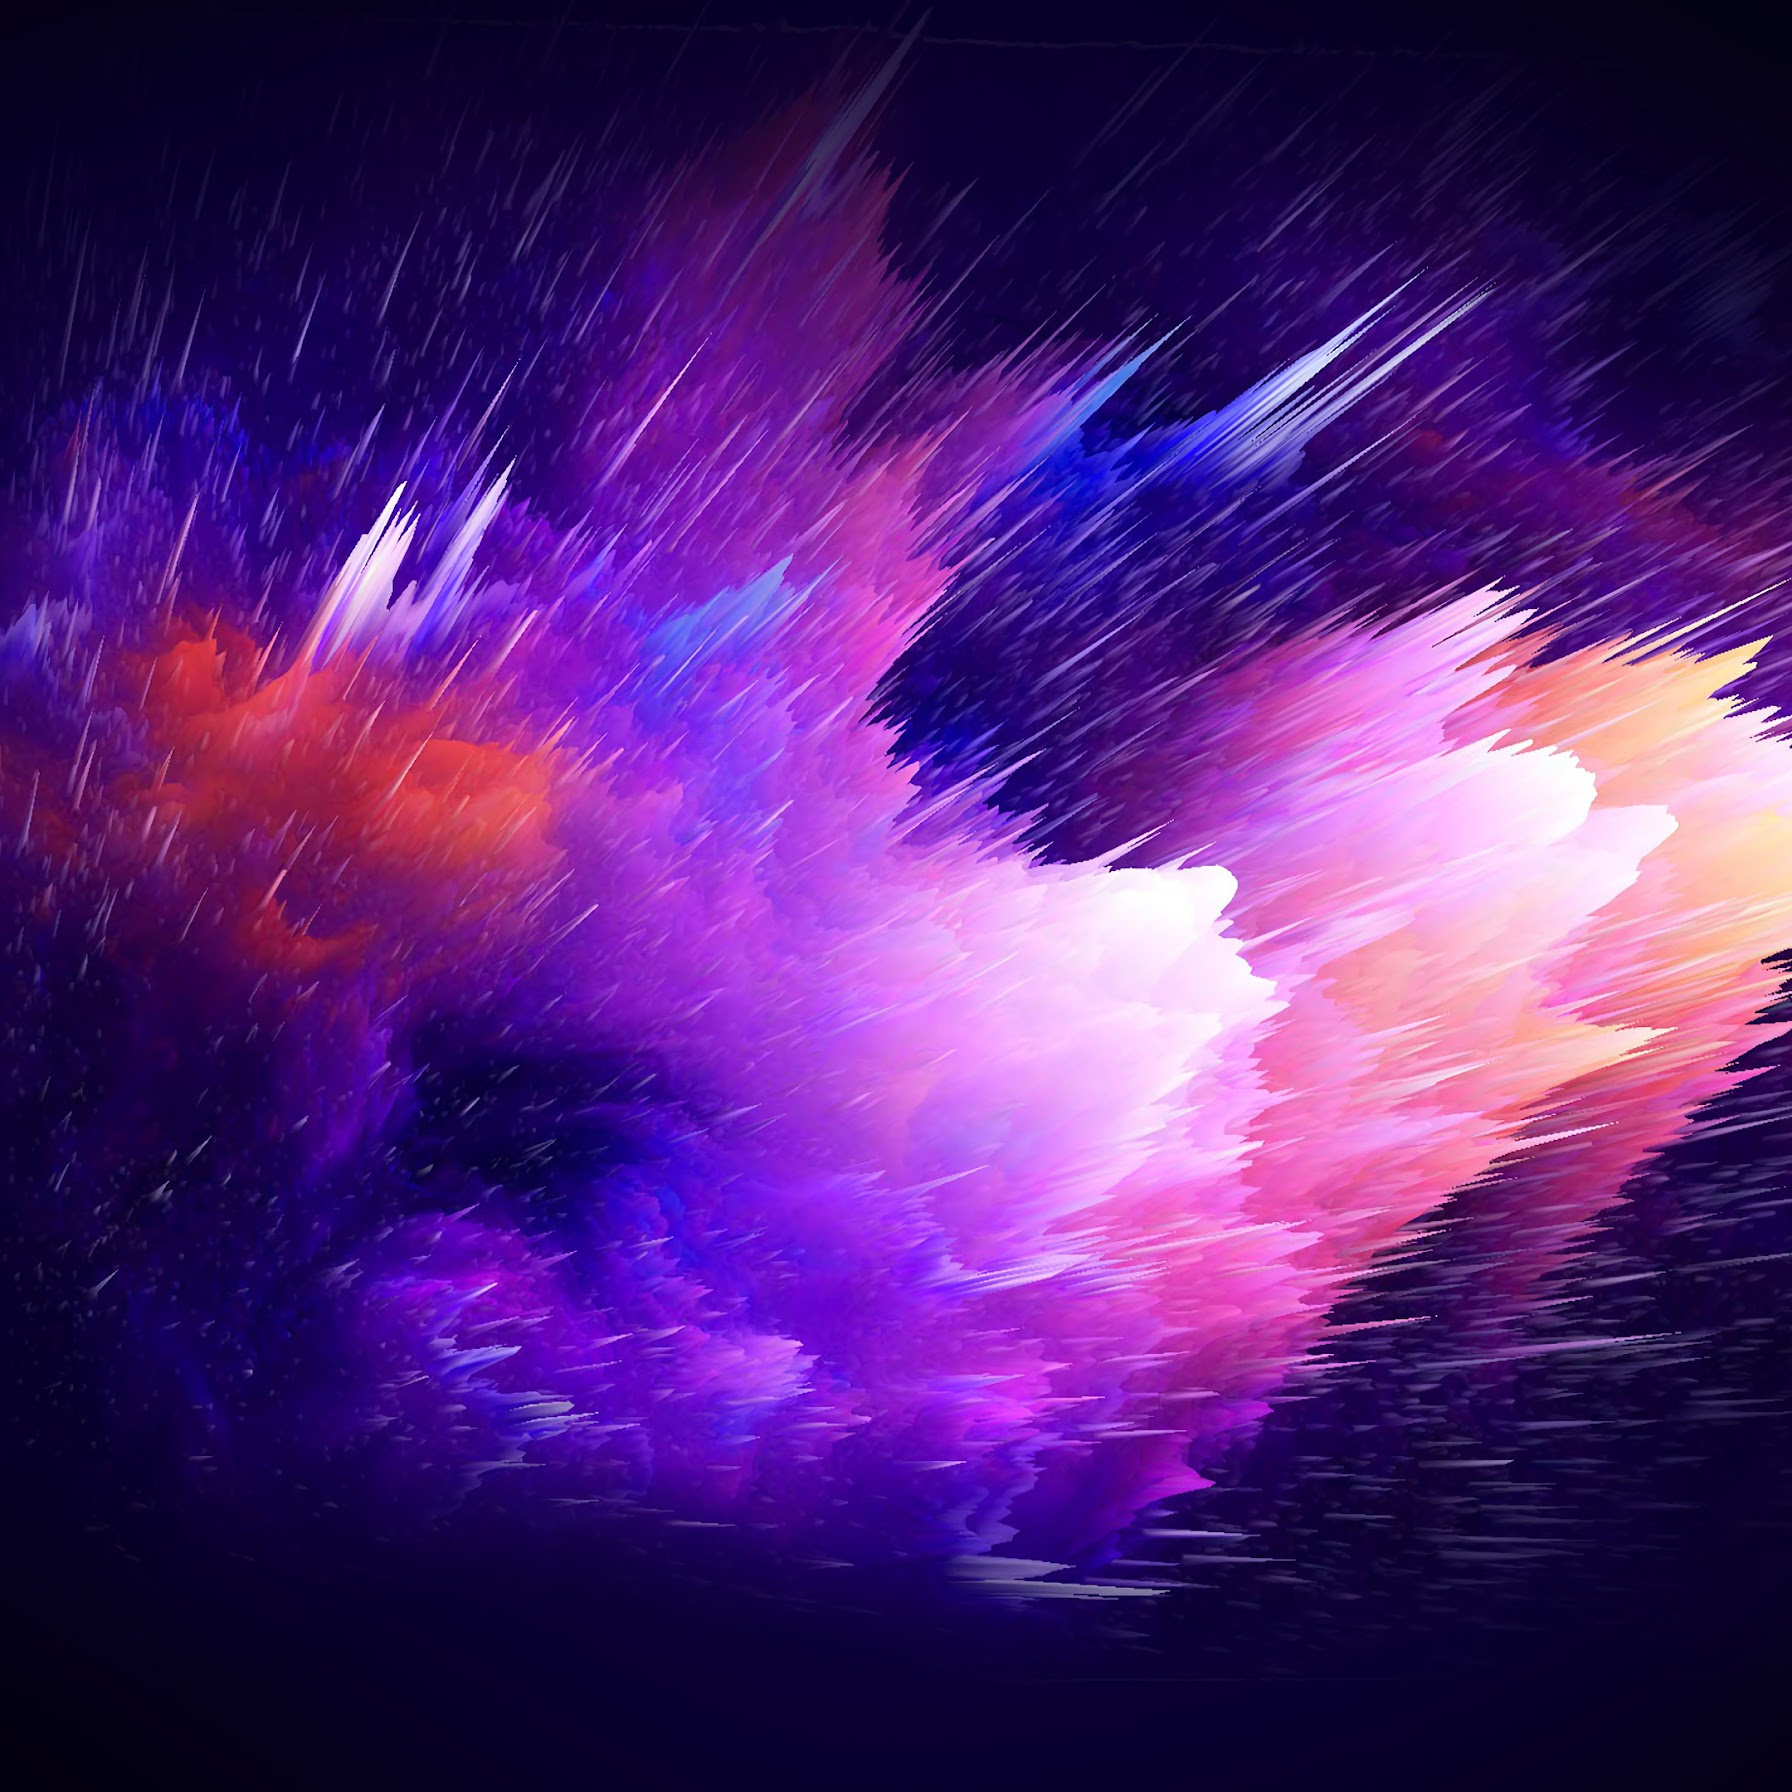 Abstract, Colorful, Clouds, Explosion, 4K, 3840x2160, #32